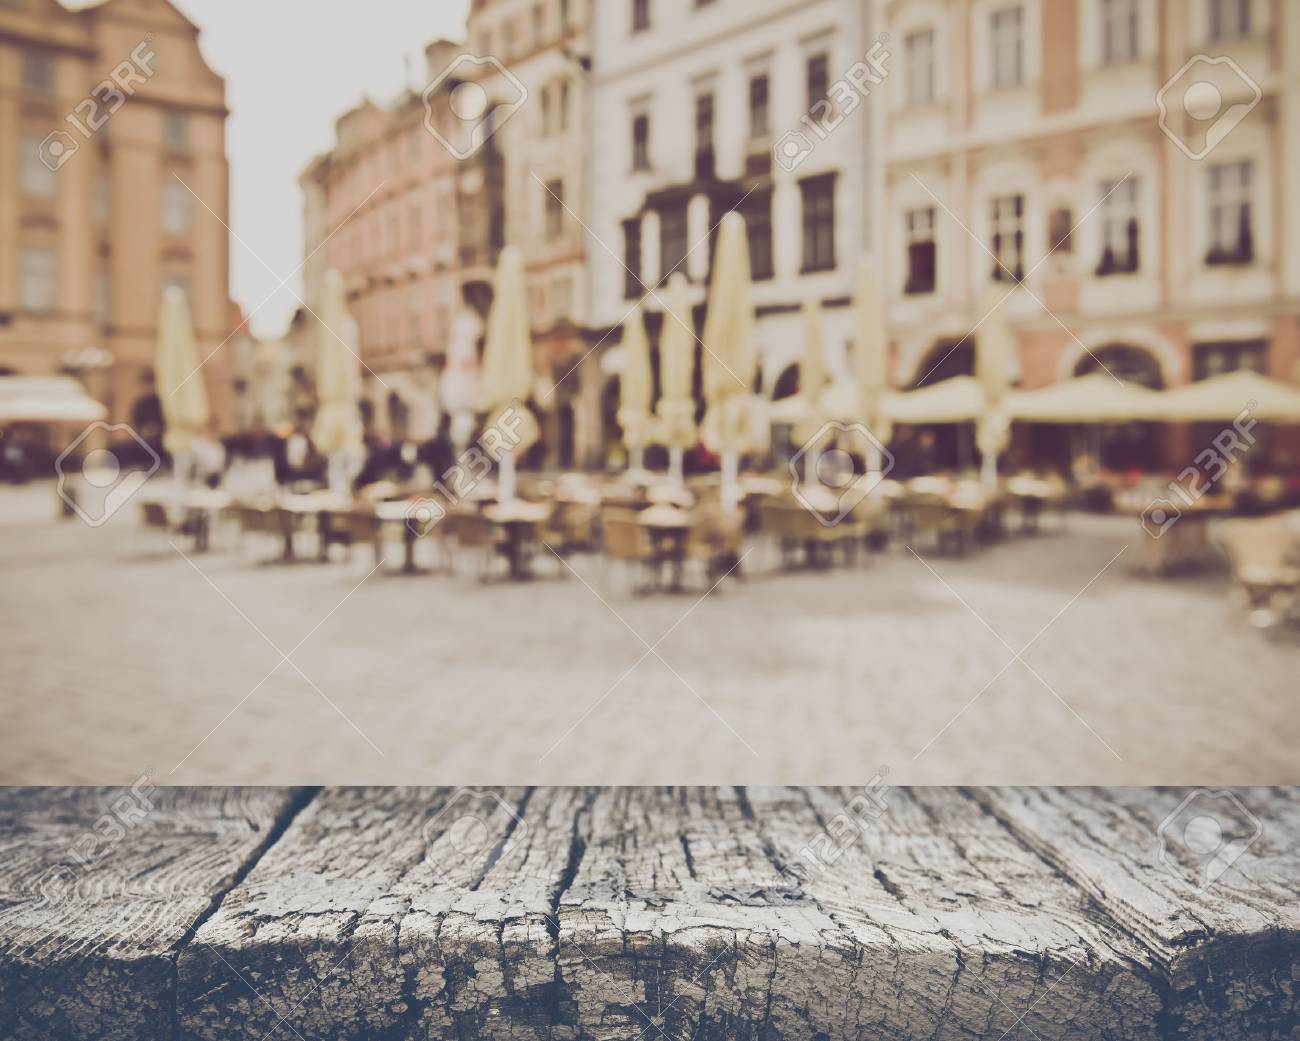 Blurred Empty Cafe in European City - 55007976